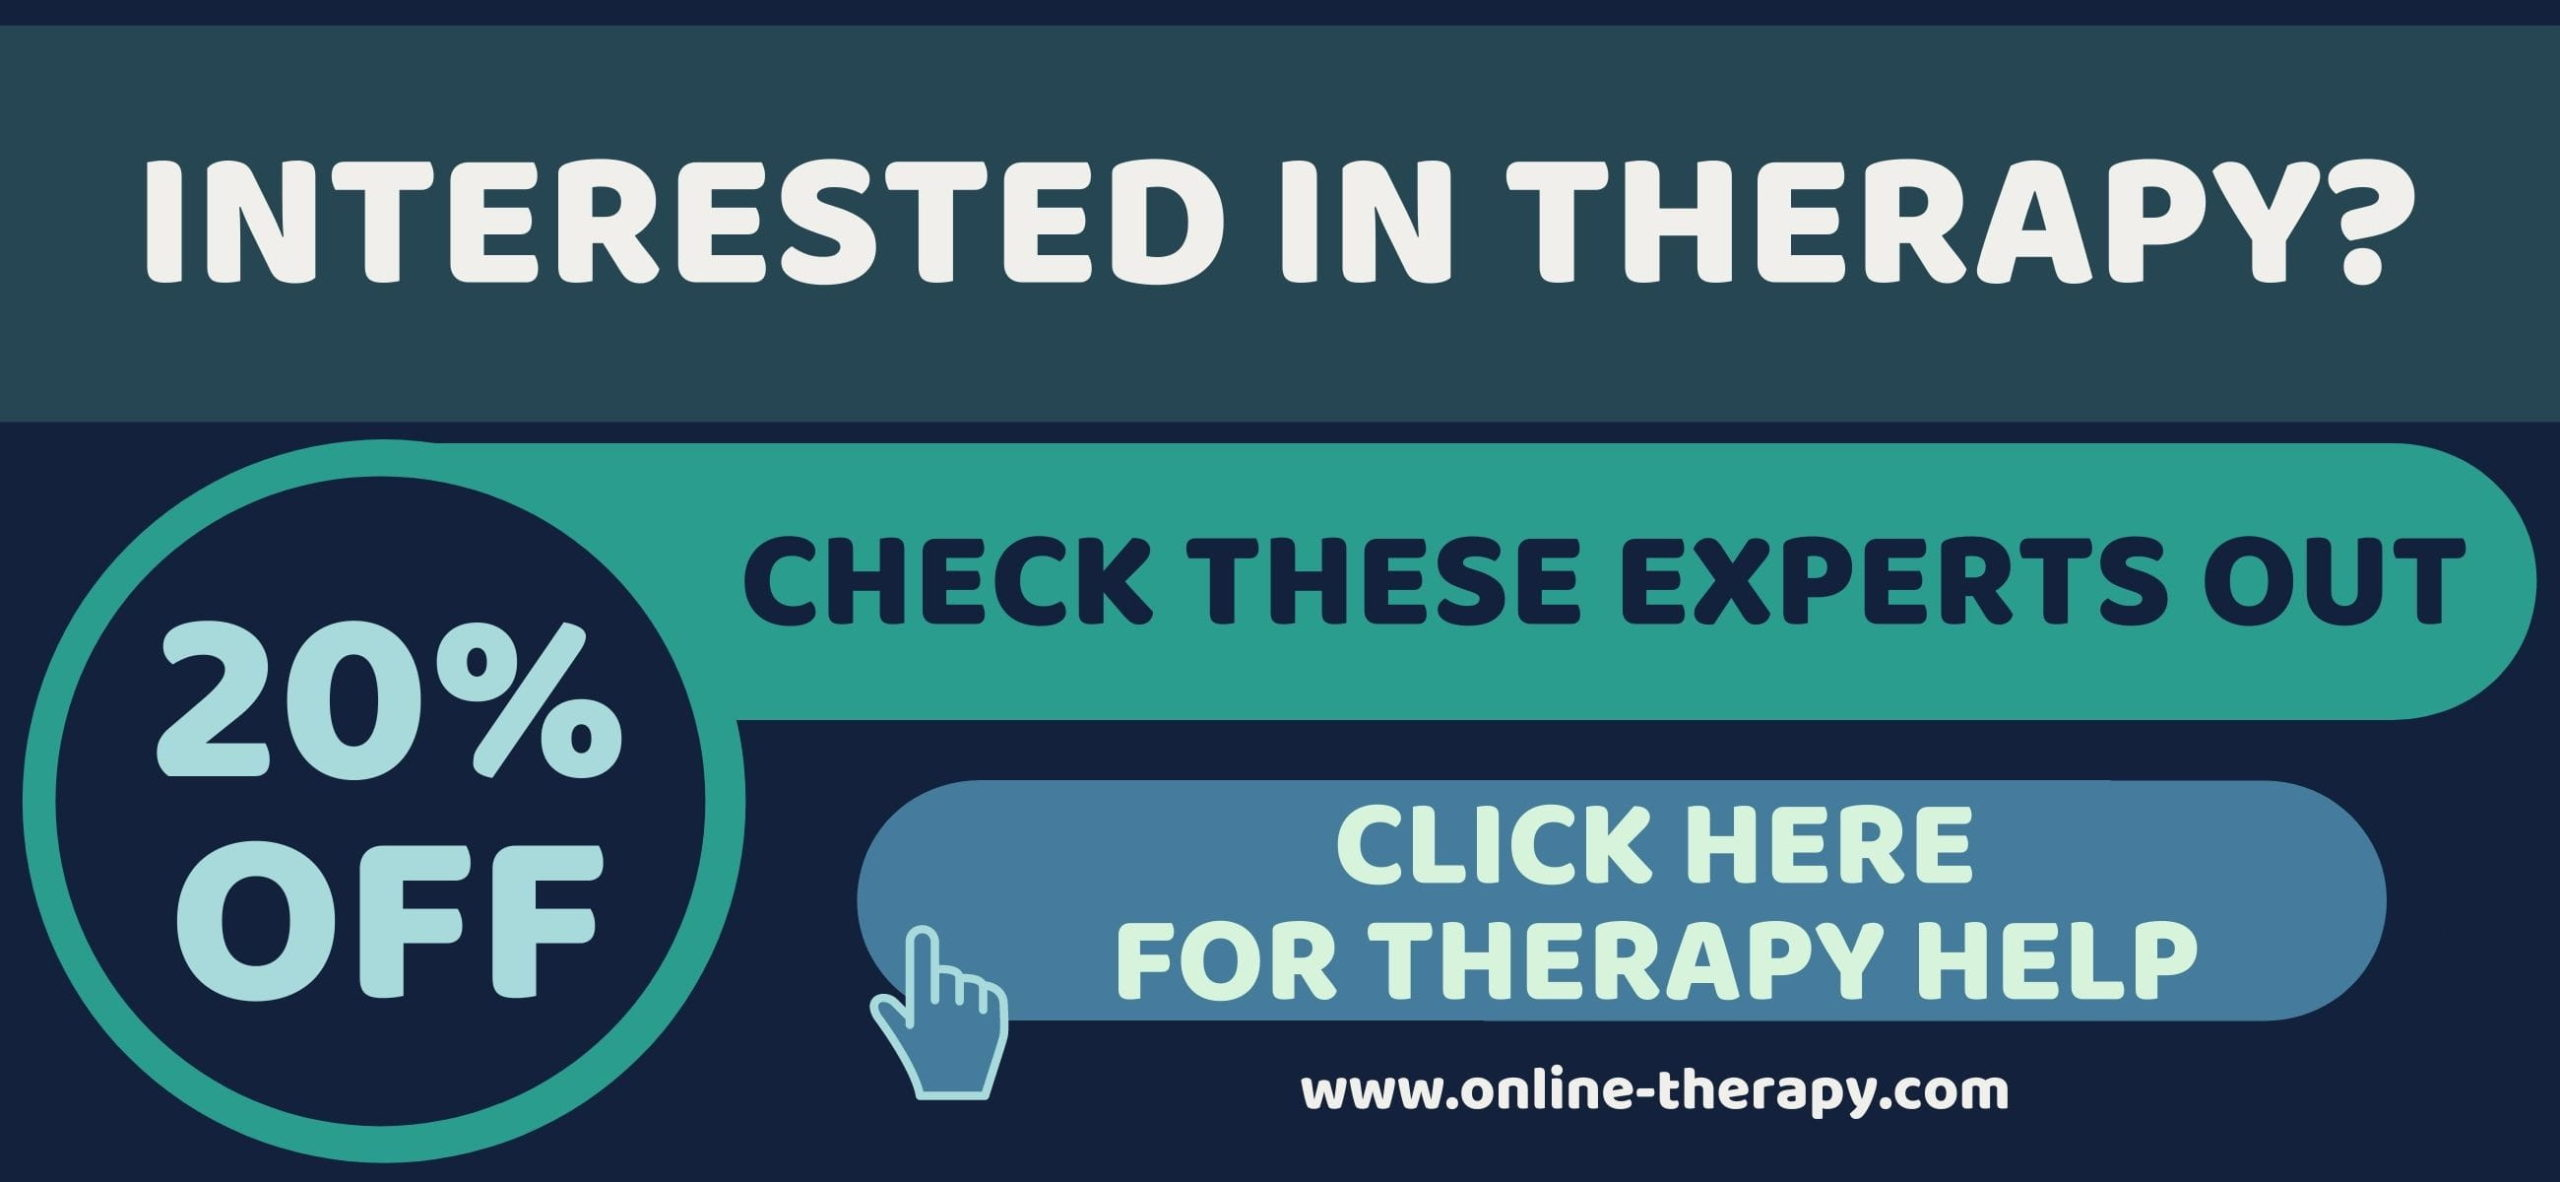 INTERESTED IN THERAPY_-min